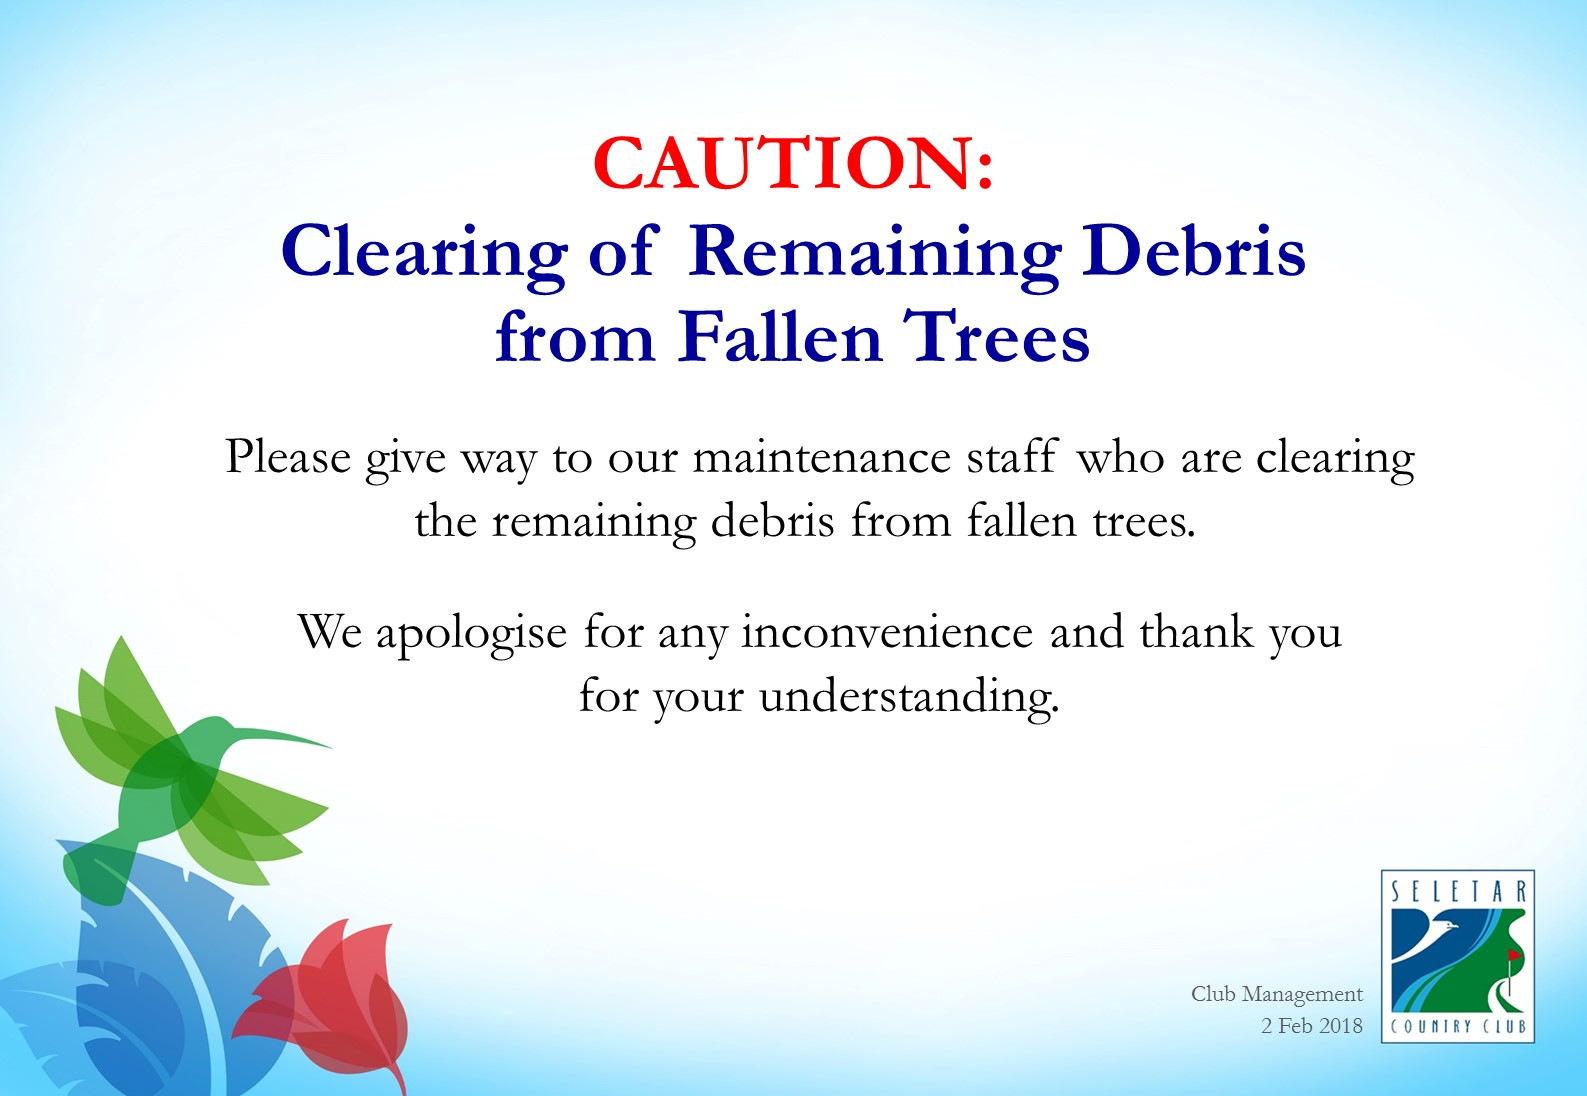 Clearing of Remaining Debris from Fallen Trees